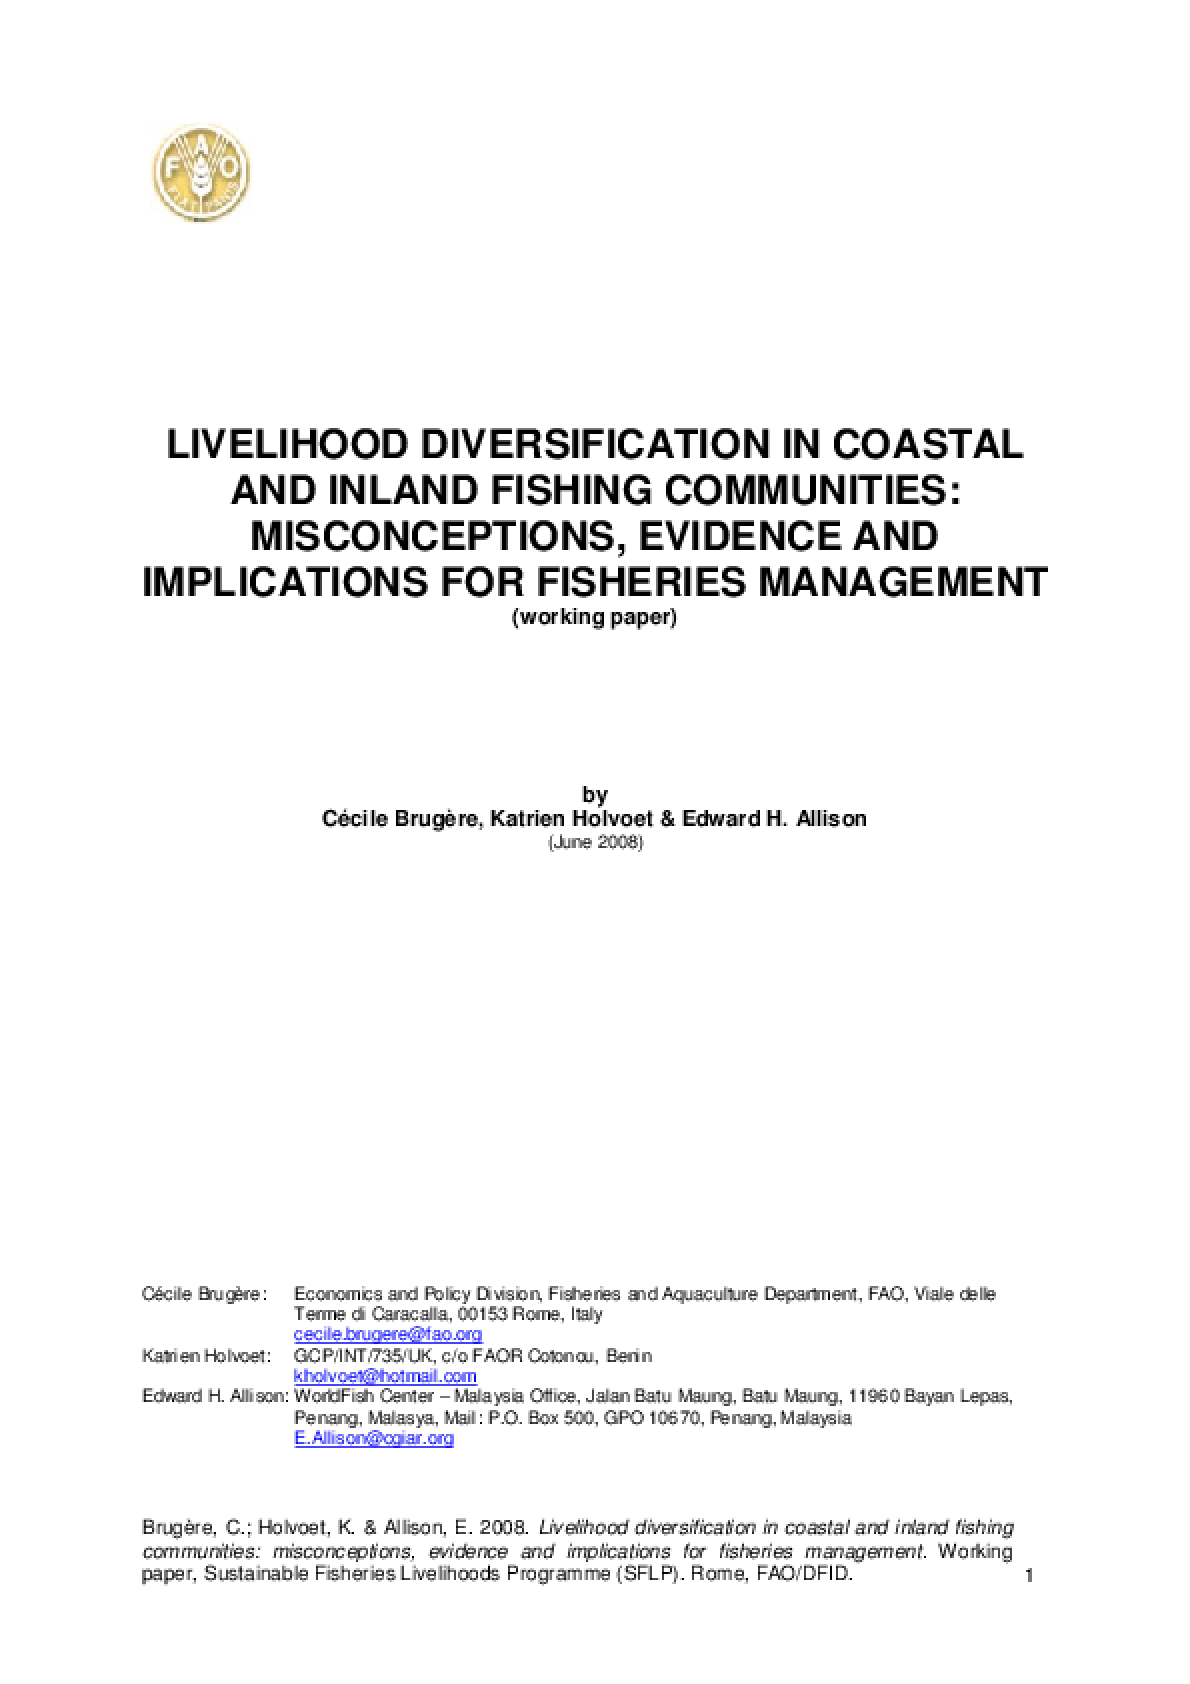 Livelihood Diversification In Coastal and Inland Fishing Communities: Misconceptions, Evidence and Implications for Fisheries Management